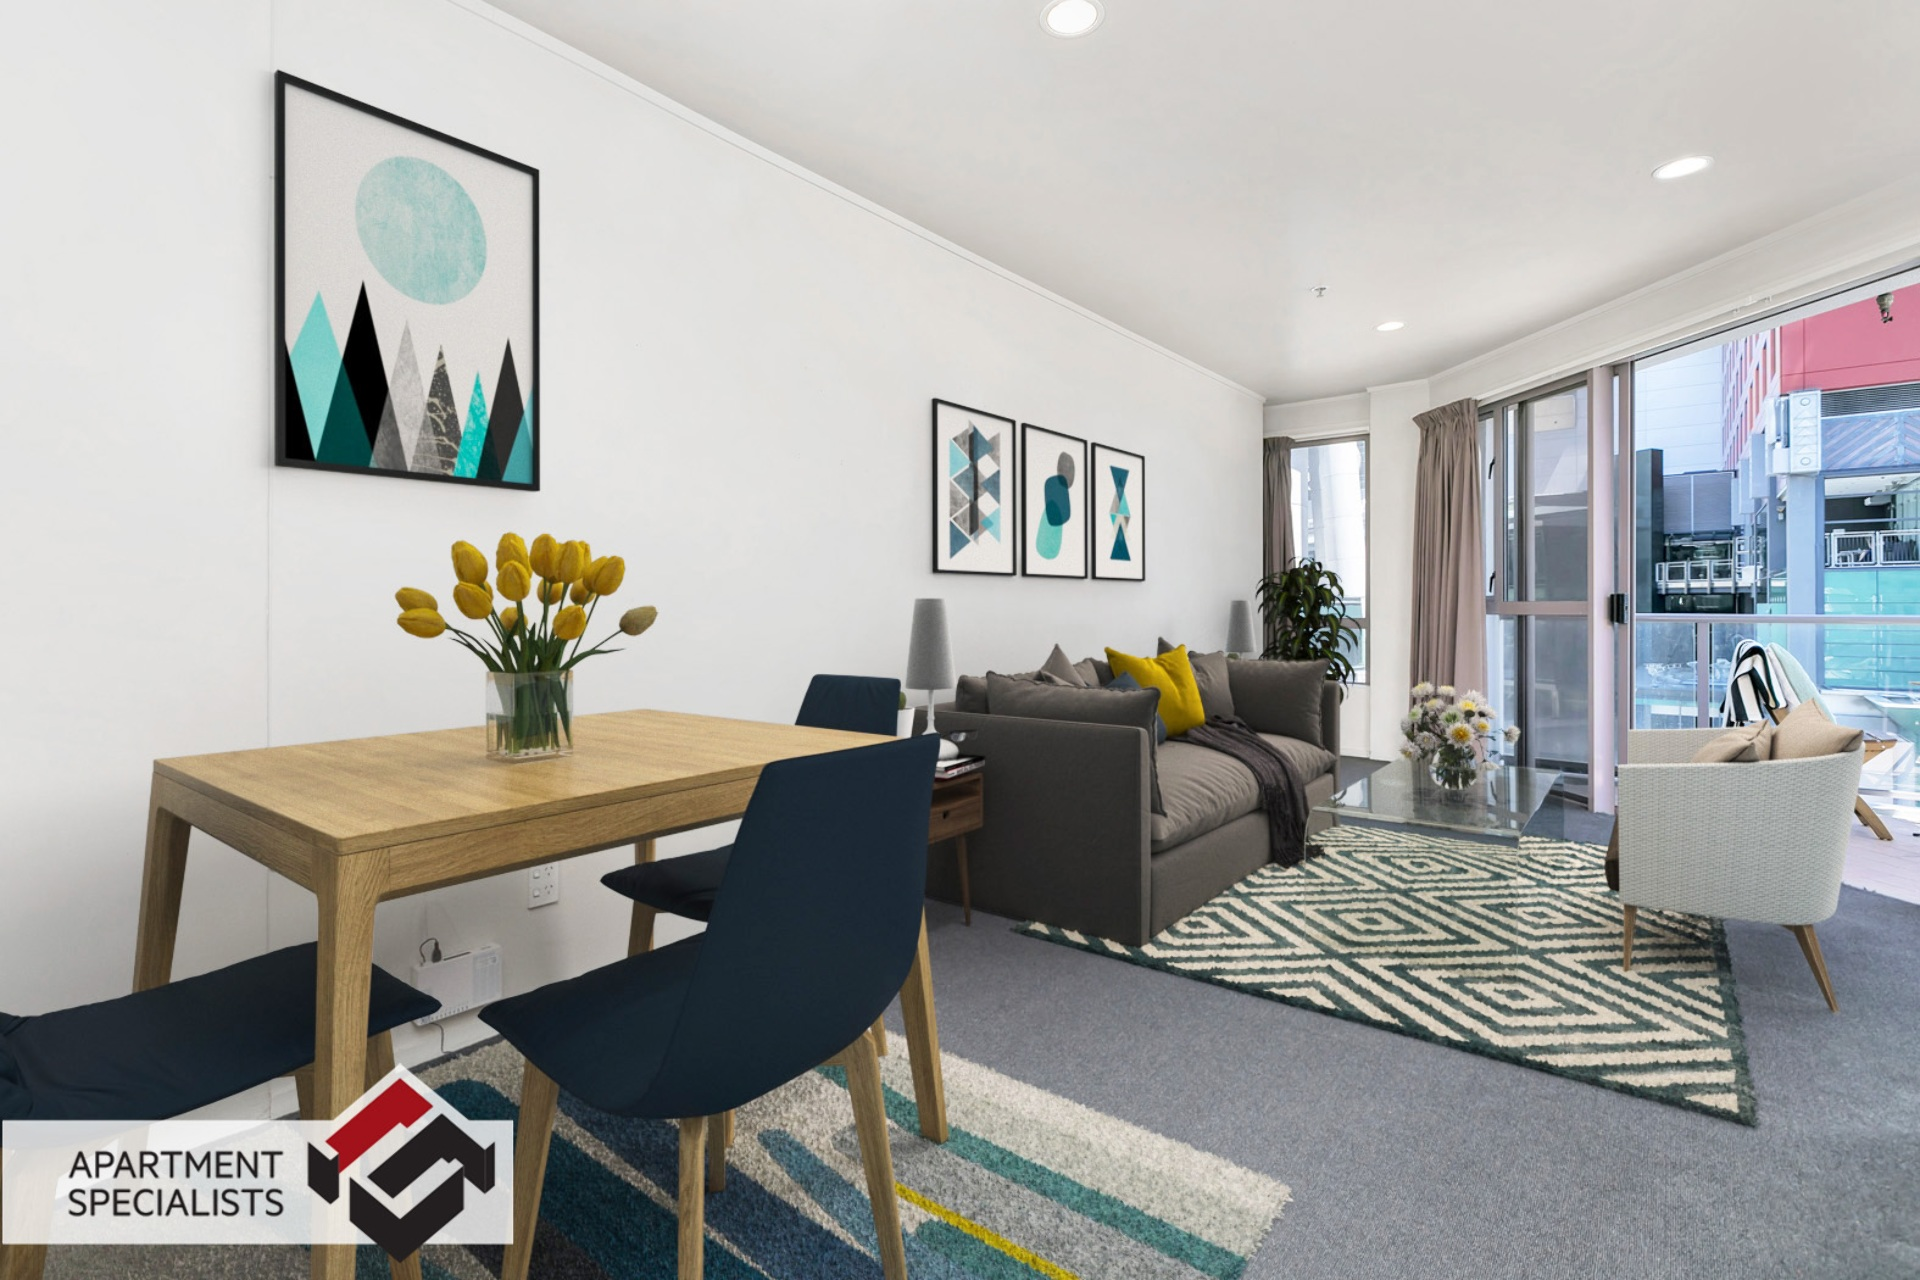 1 | 89 Victoria Street West, City Centre | Apartment Specialists